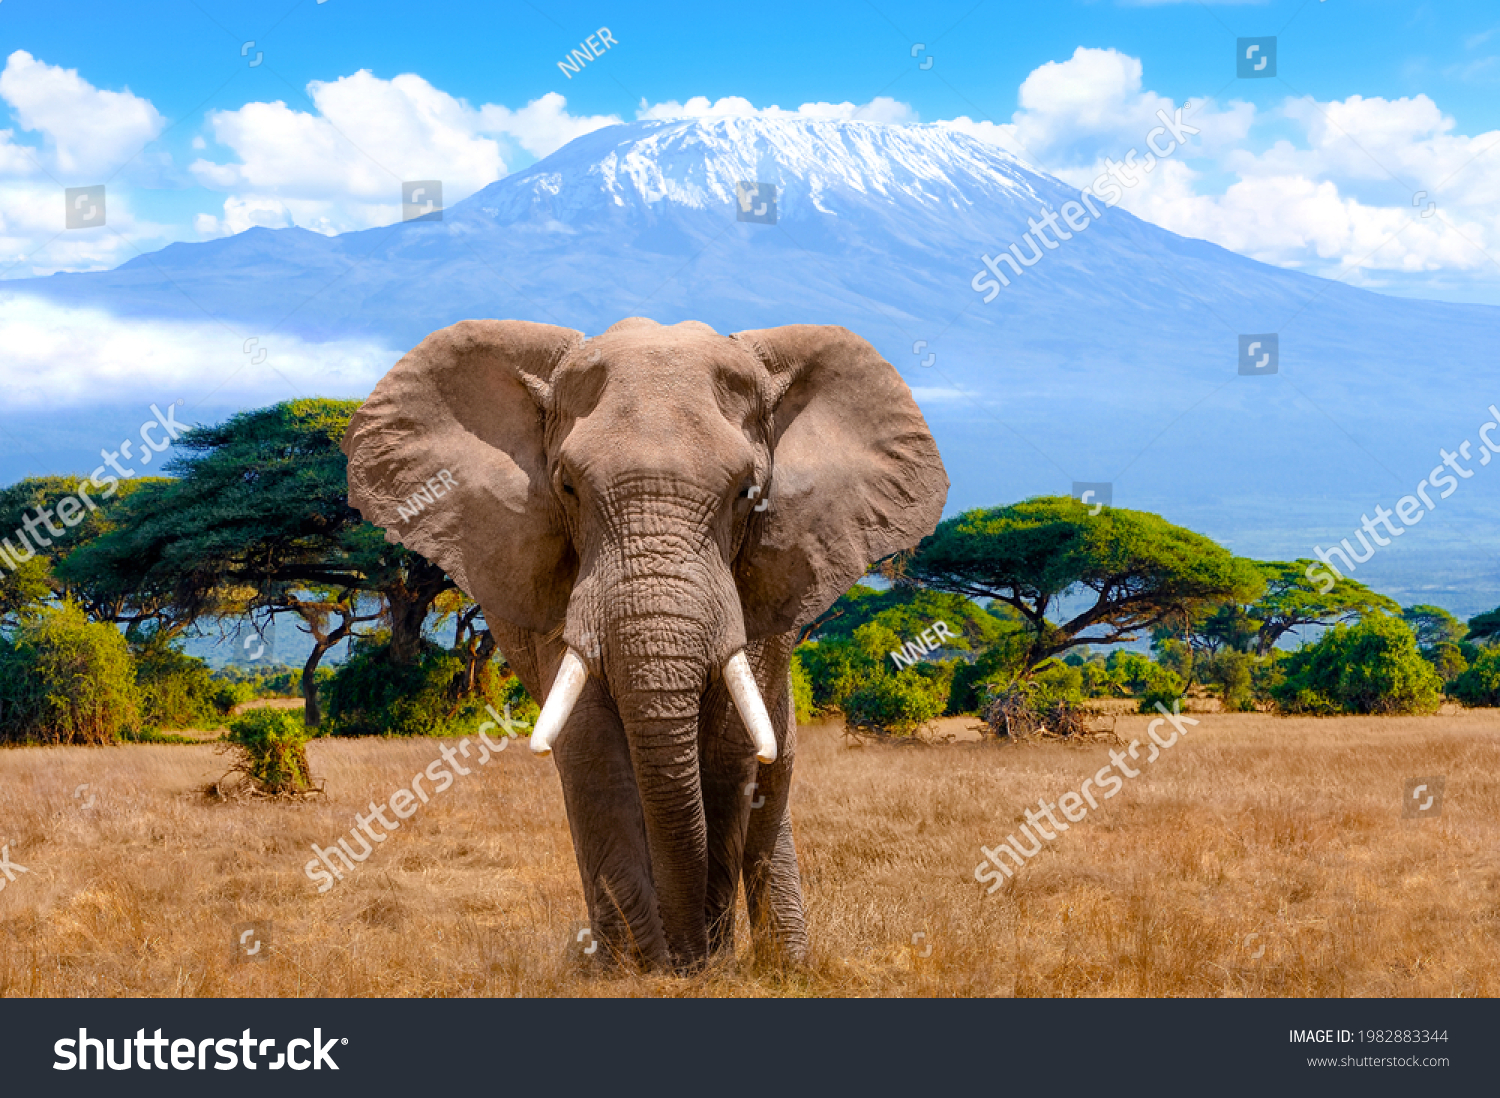 A male elephant in front of Mount Kilimanjaro in Kenya National Park, Africa #1982883344